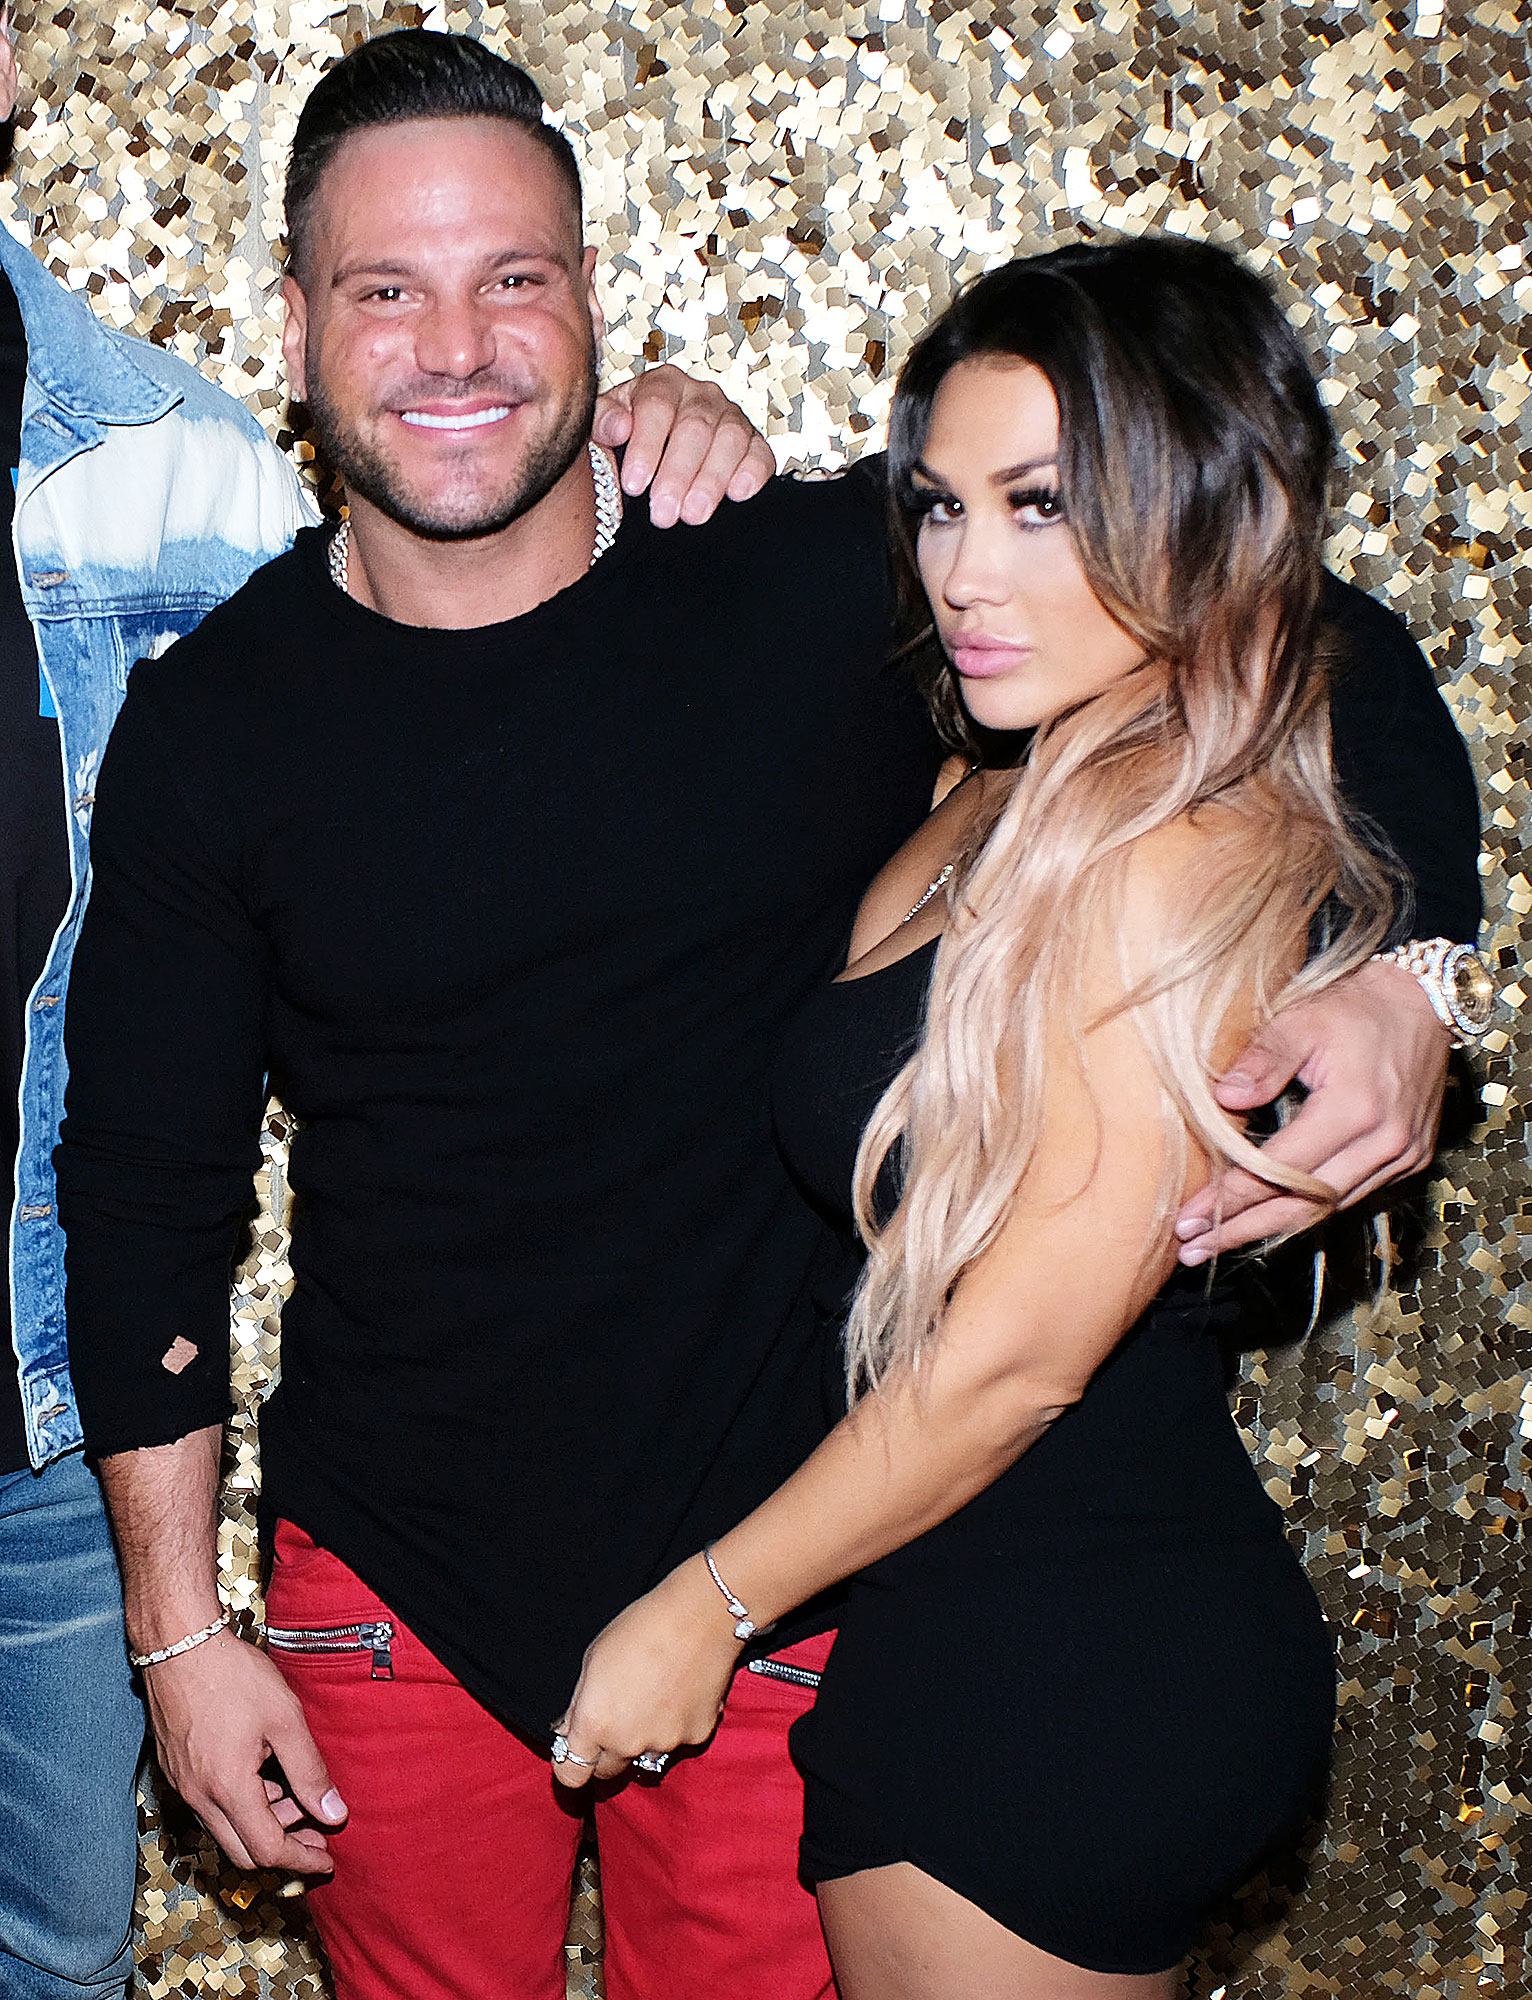 Ronnie Ortiz-Magro and Jen Harley Are Selling Their Las Vegas Home Amid Drama